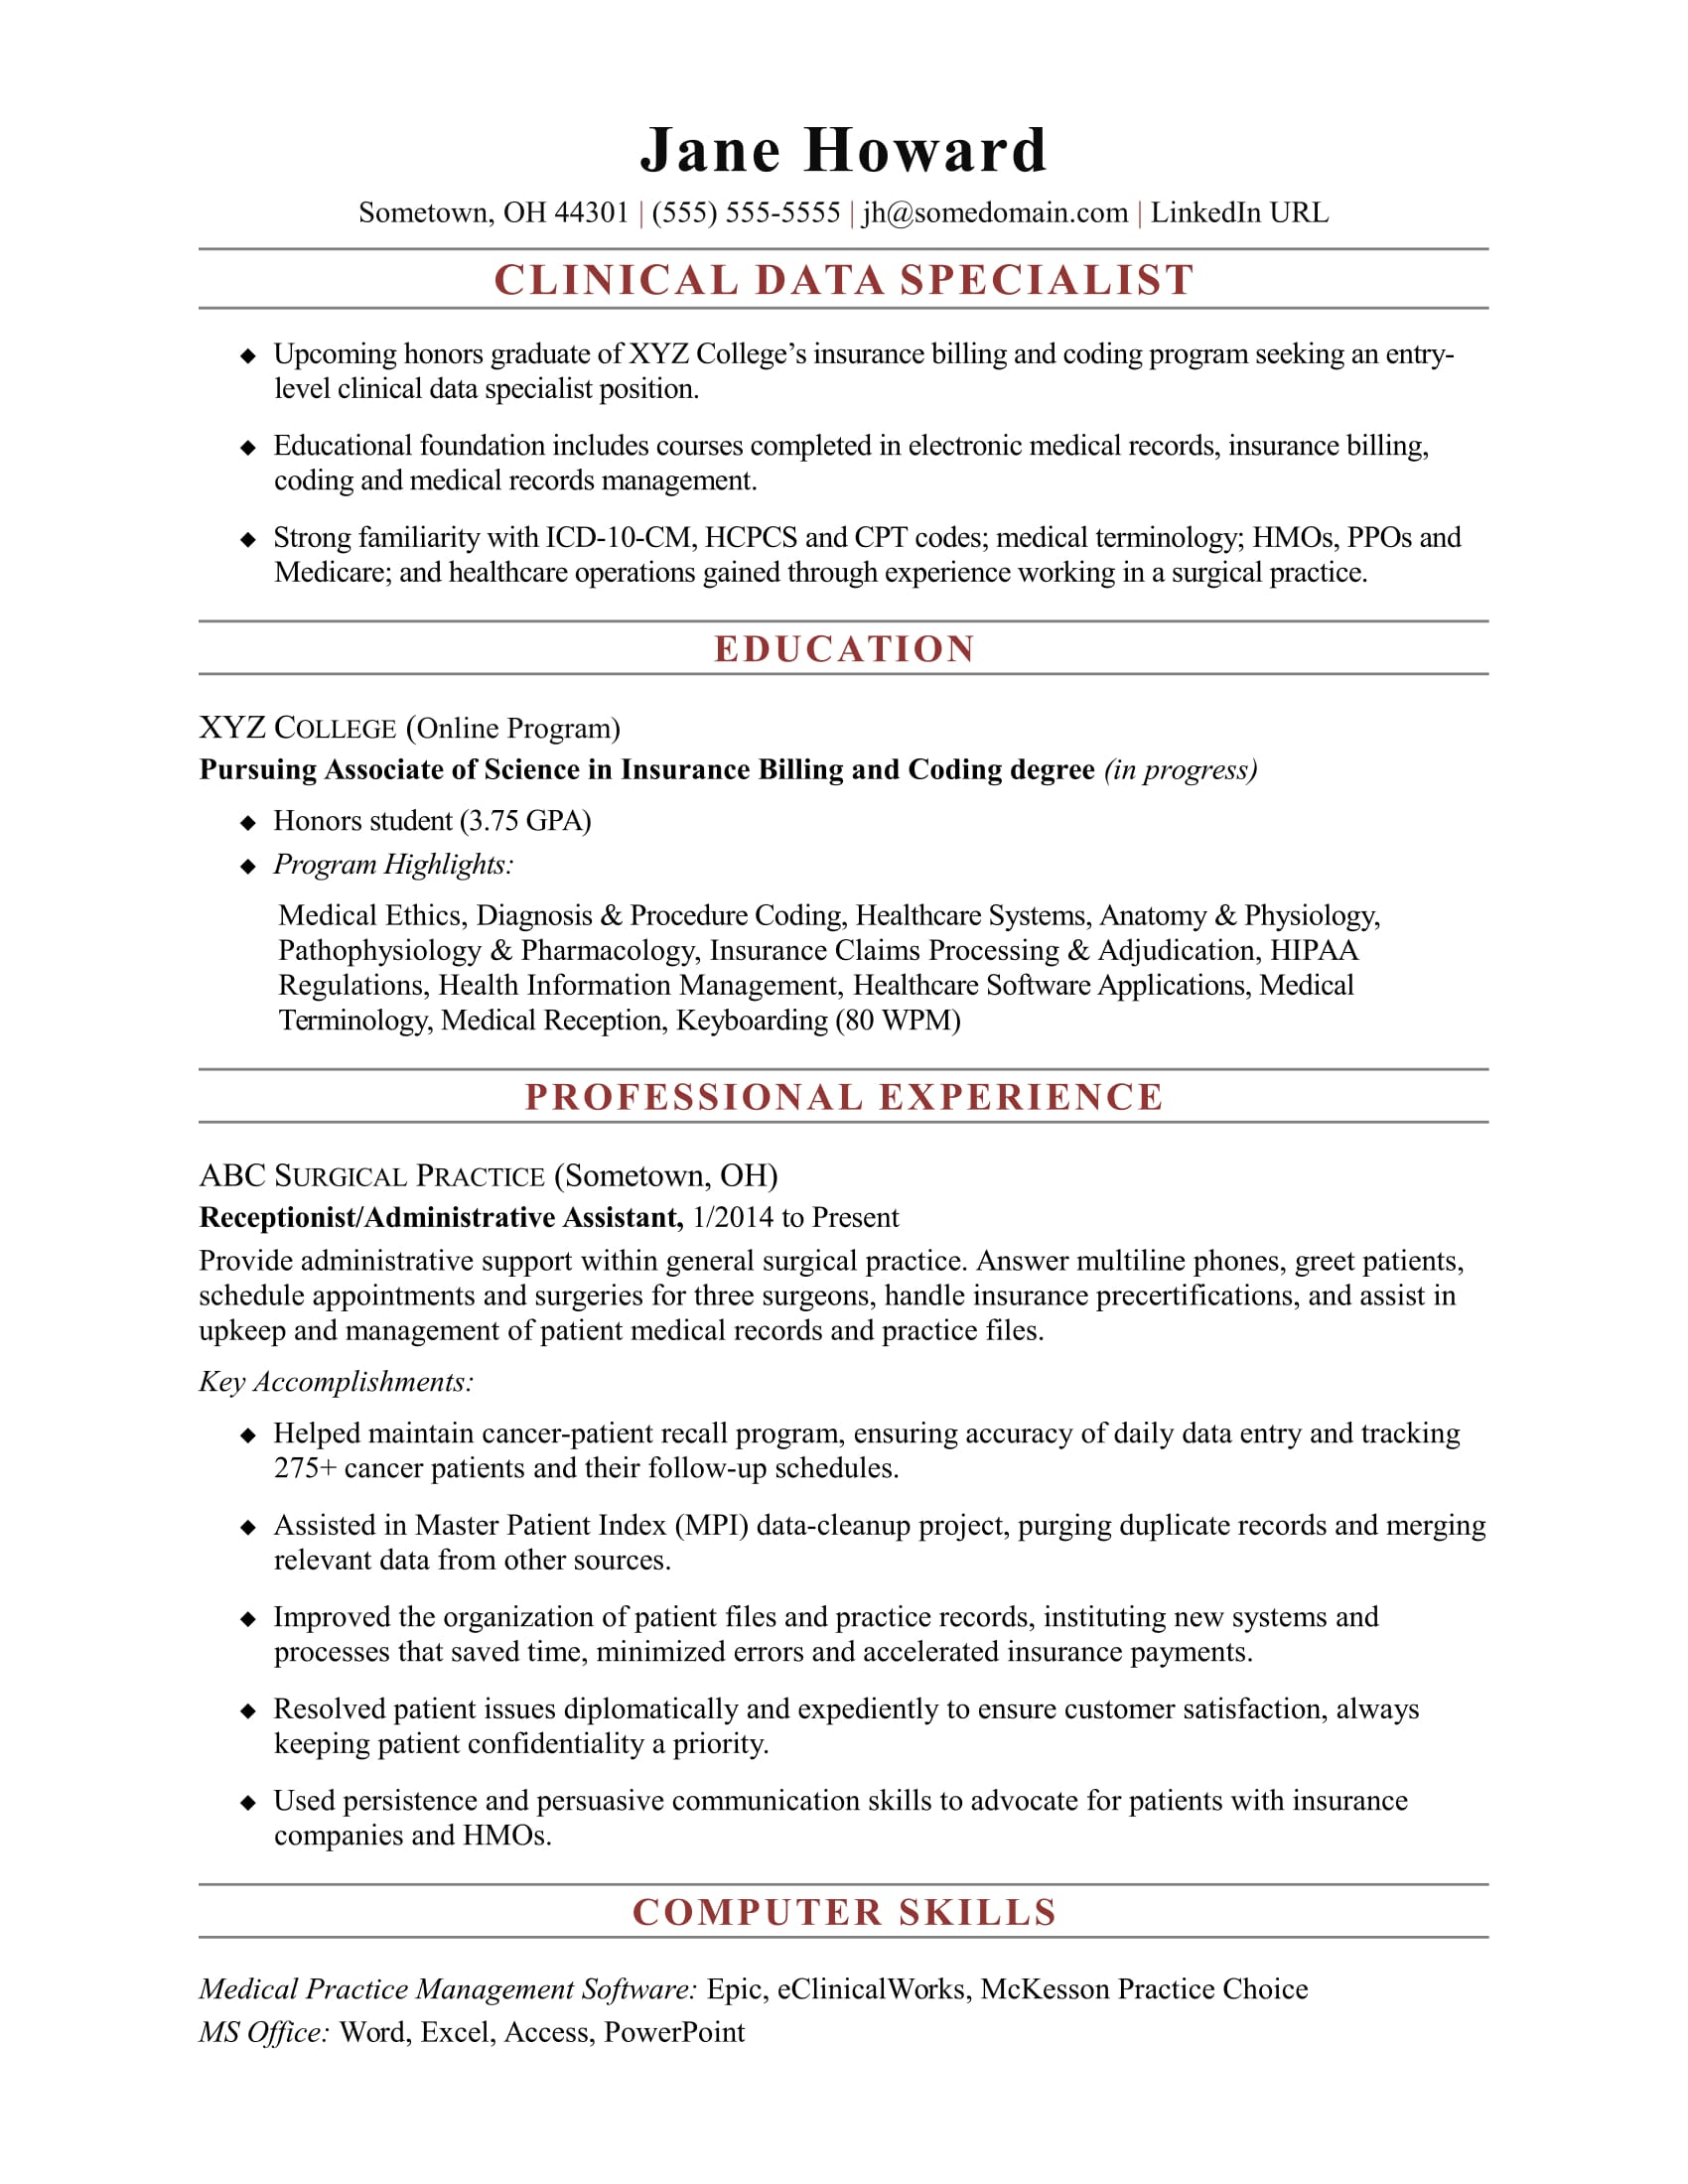 Sample Resume For An Entry Level Clinical Data Specialist  Entry Level Resume Samples